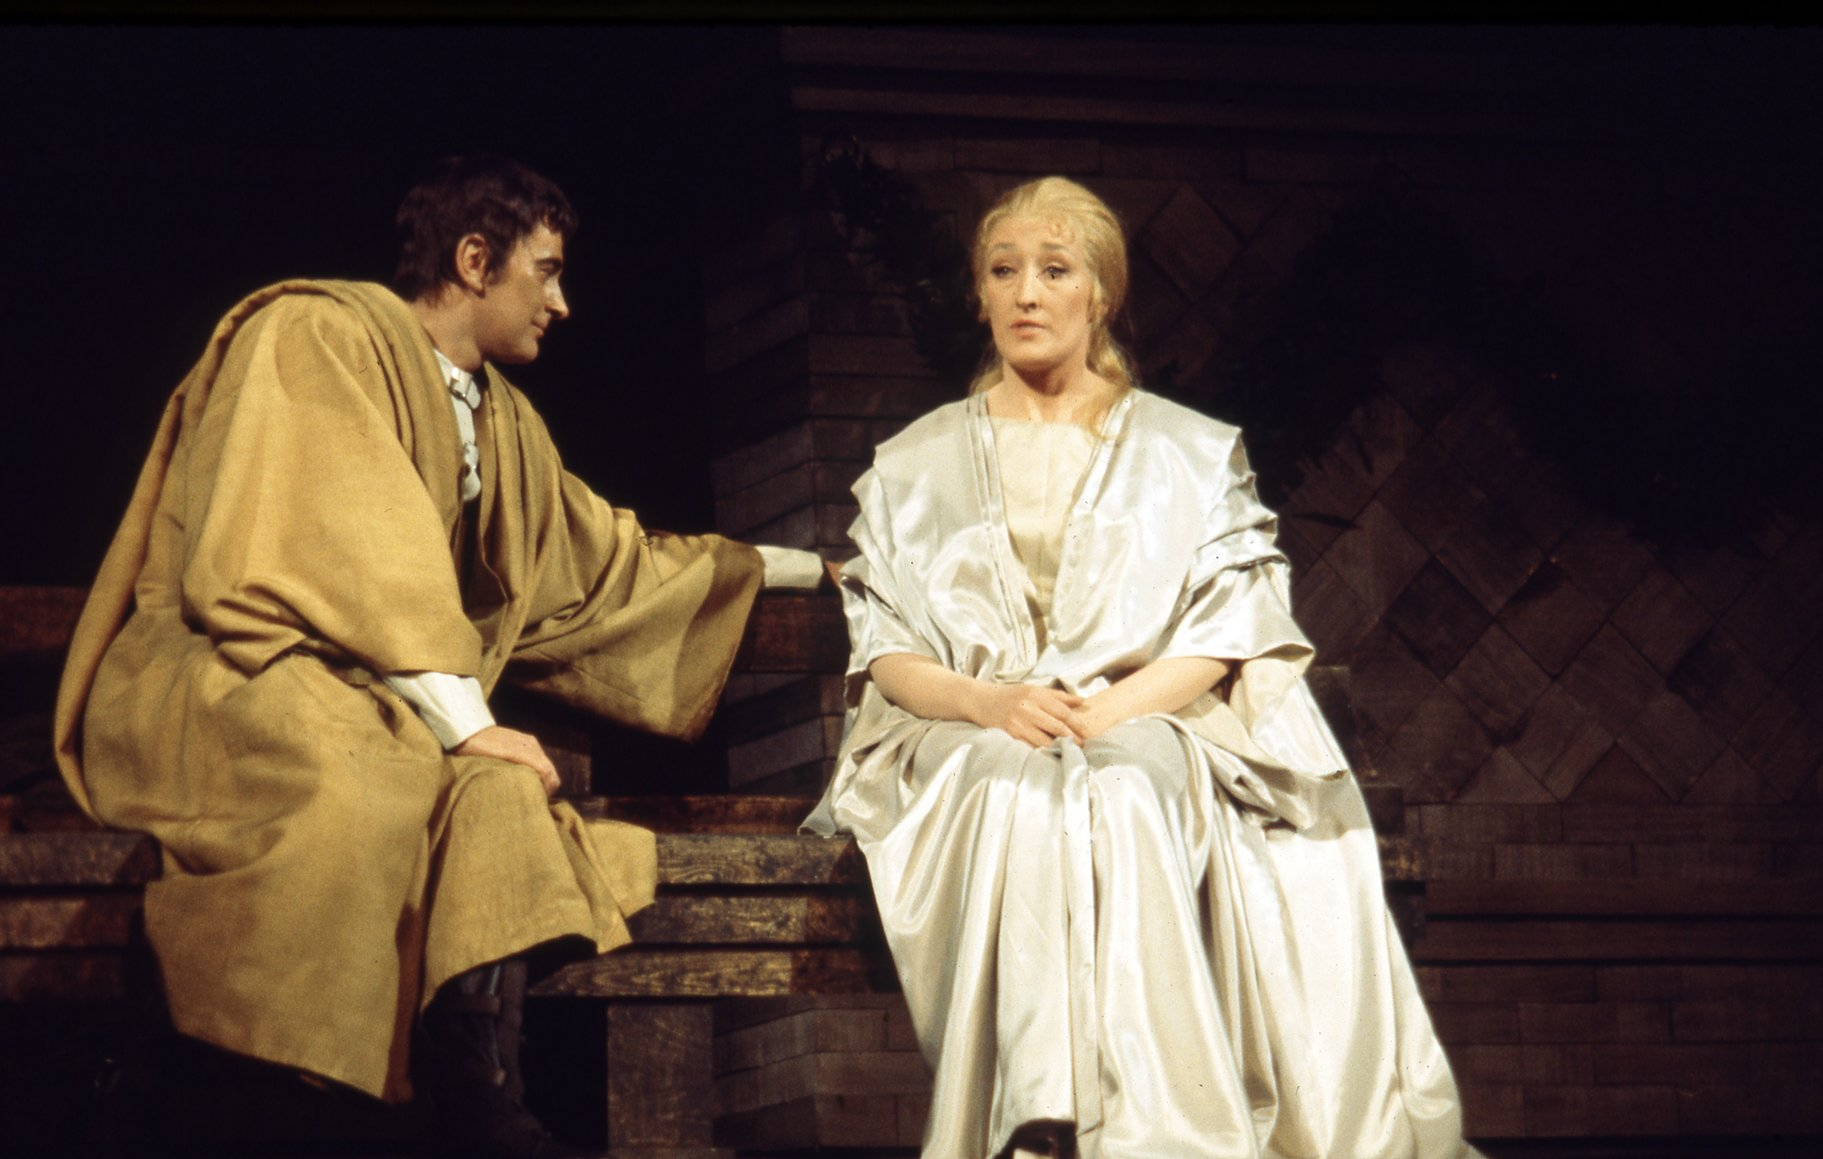 Portia sits and Brutus reaches out to her in the 1968 production of Julius Caesar.